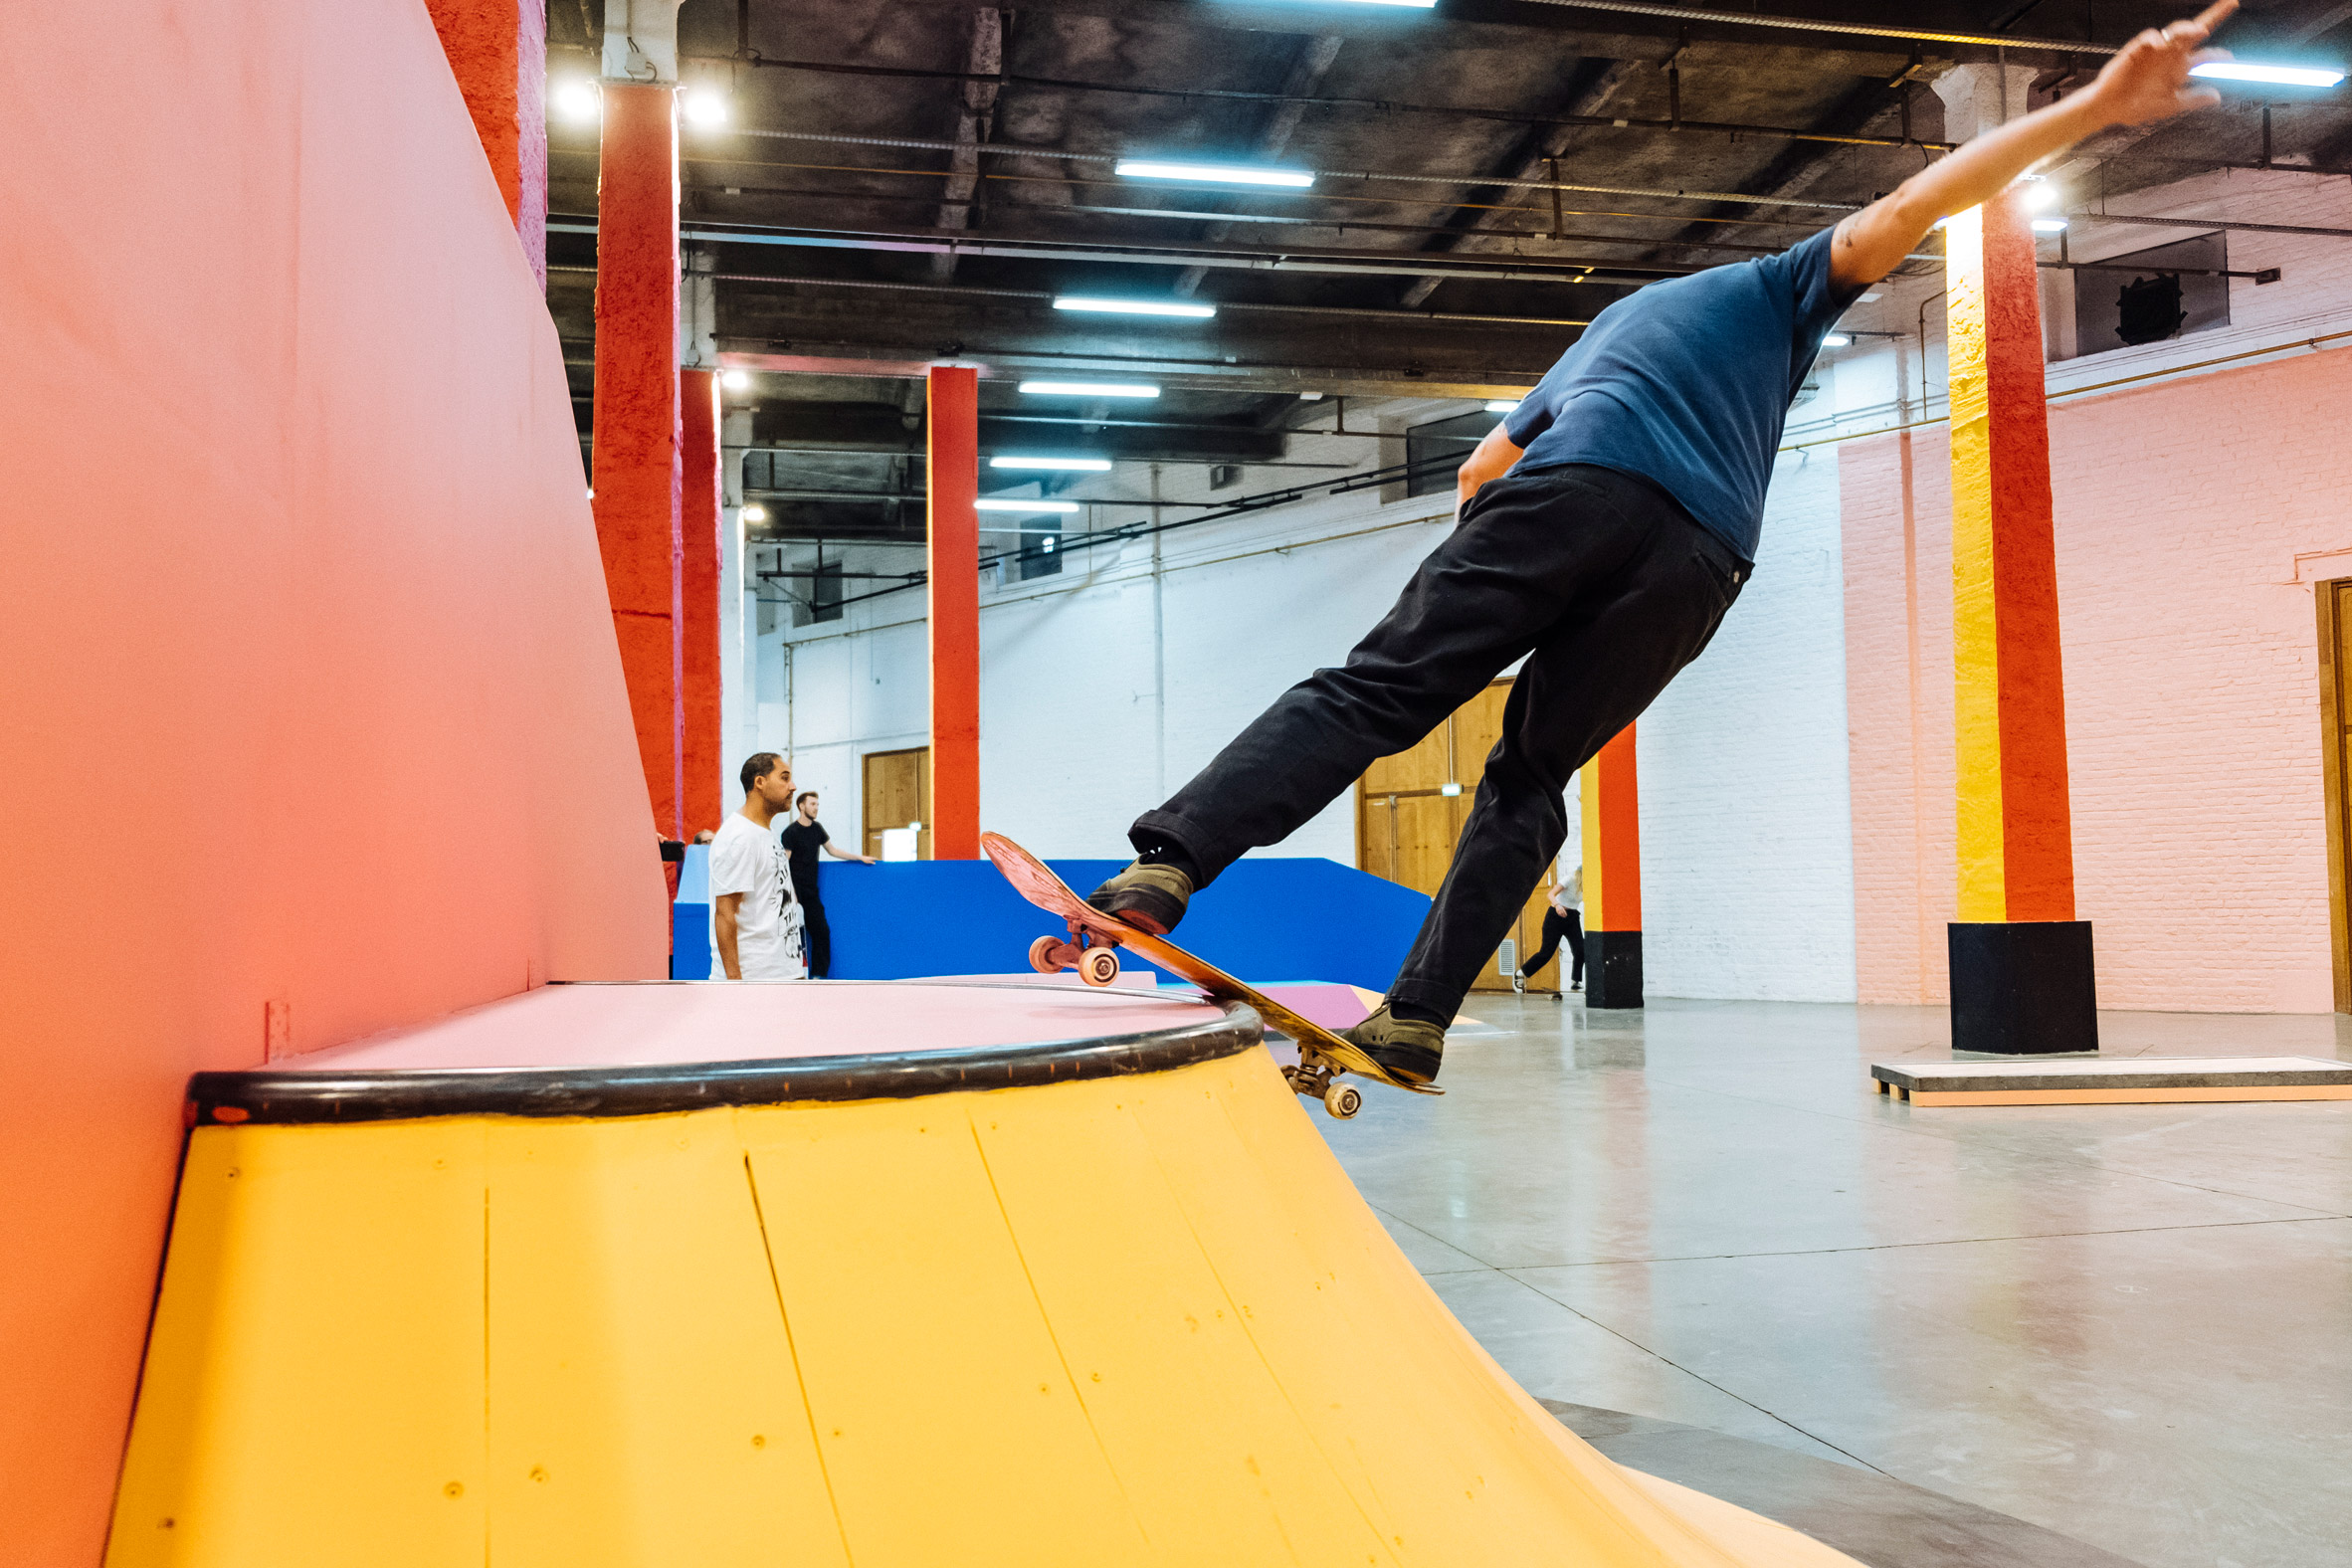 """Yinka Ilori creates """"joy and excitement"""" with colourful skate park padstyle"""